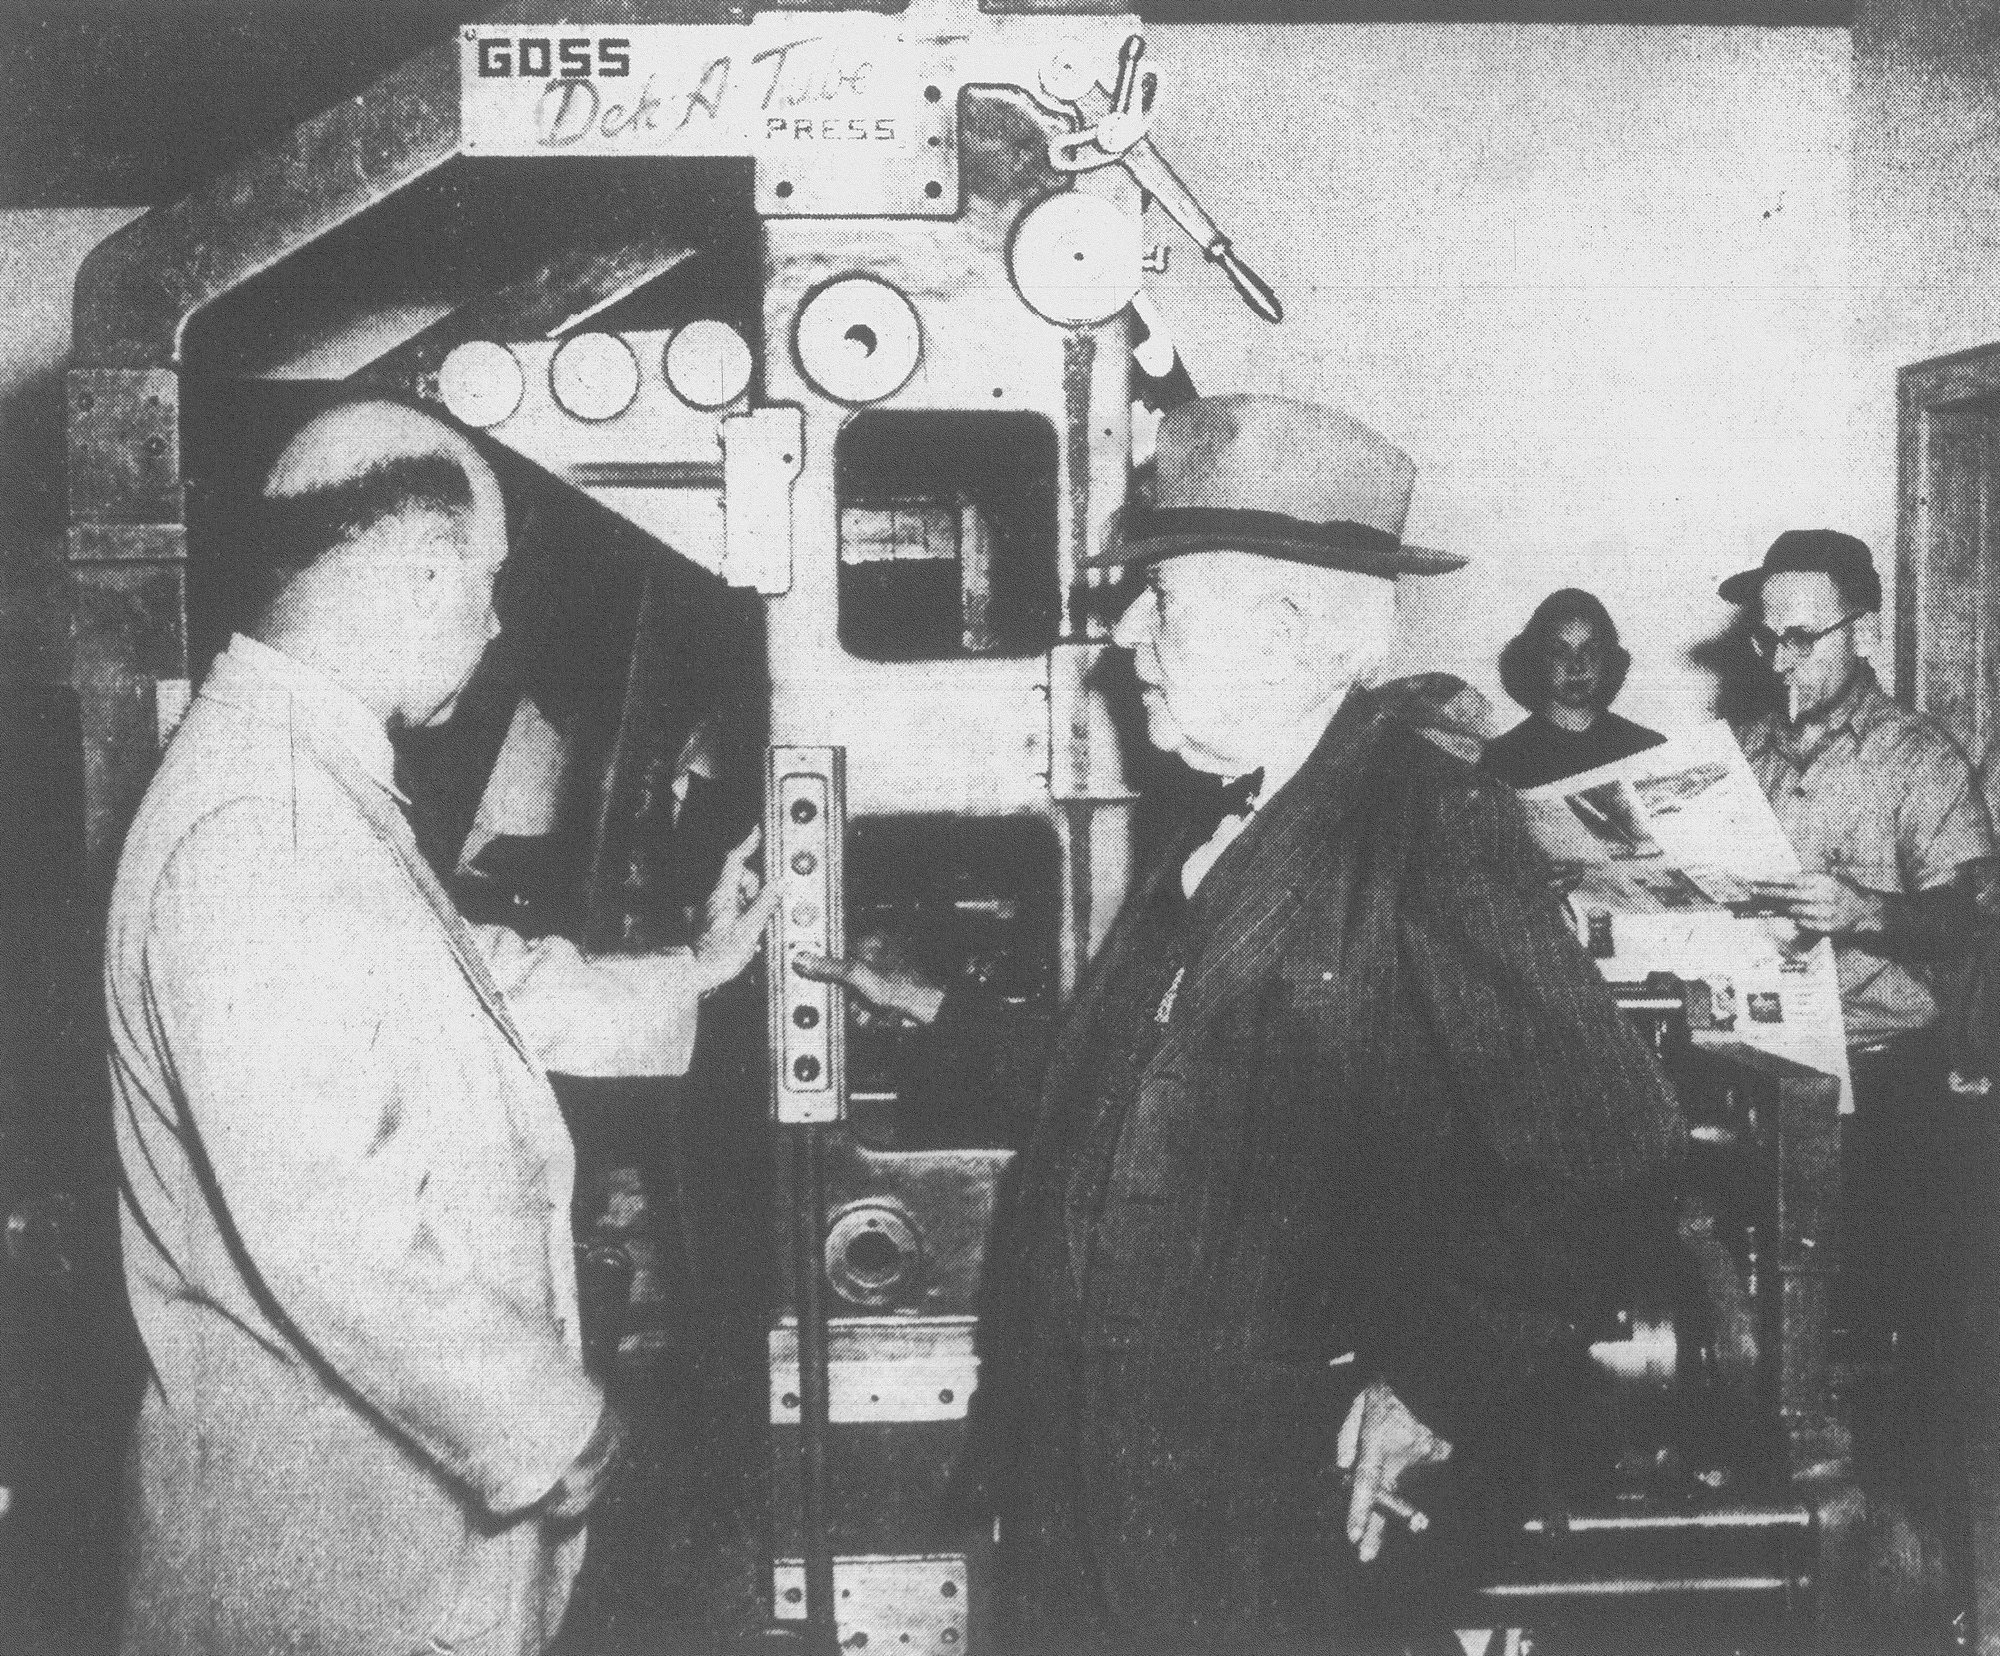 H.G. Osteen, right, president of Osteen Publishing Co. and founder of The Sumter Daily Item, presses the button that starts the papers rolling off the new Goss press for the first edition of the Item printed in its new home Oct. 26, 1953. Looking on is H.D. Osteen, editor and publisher of the paper.